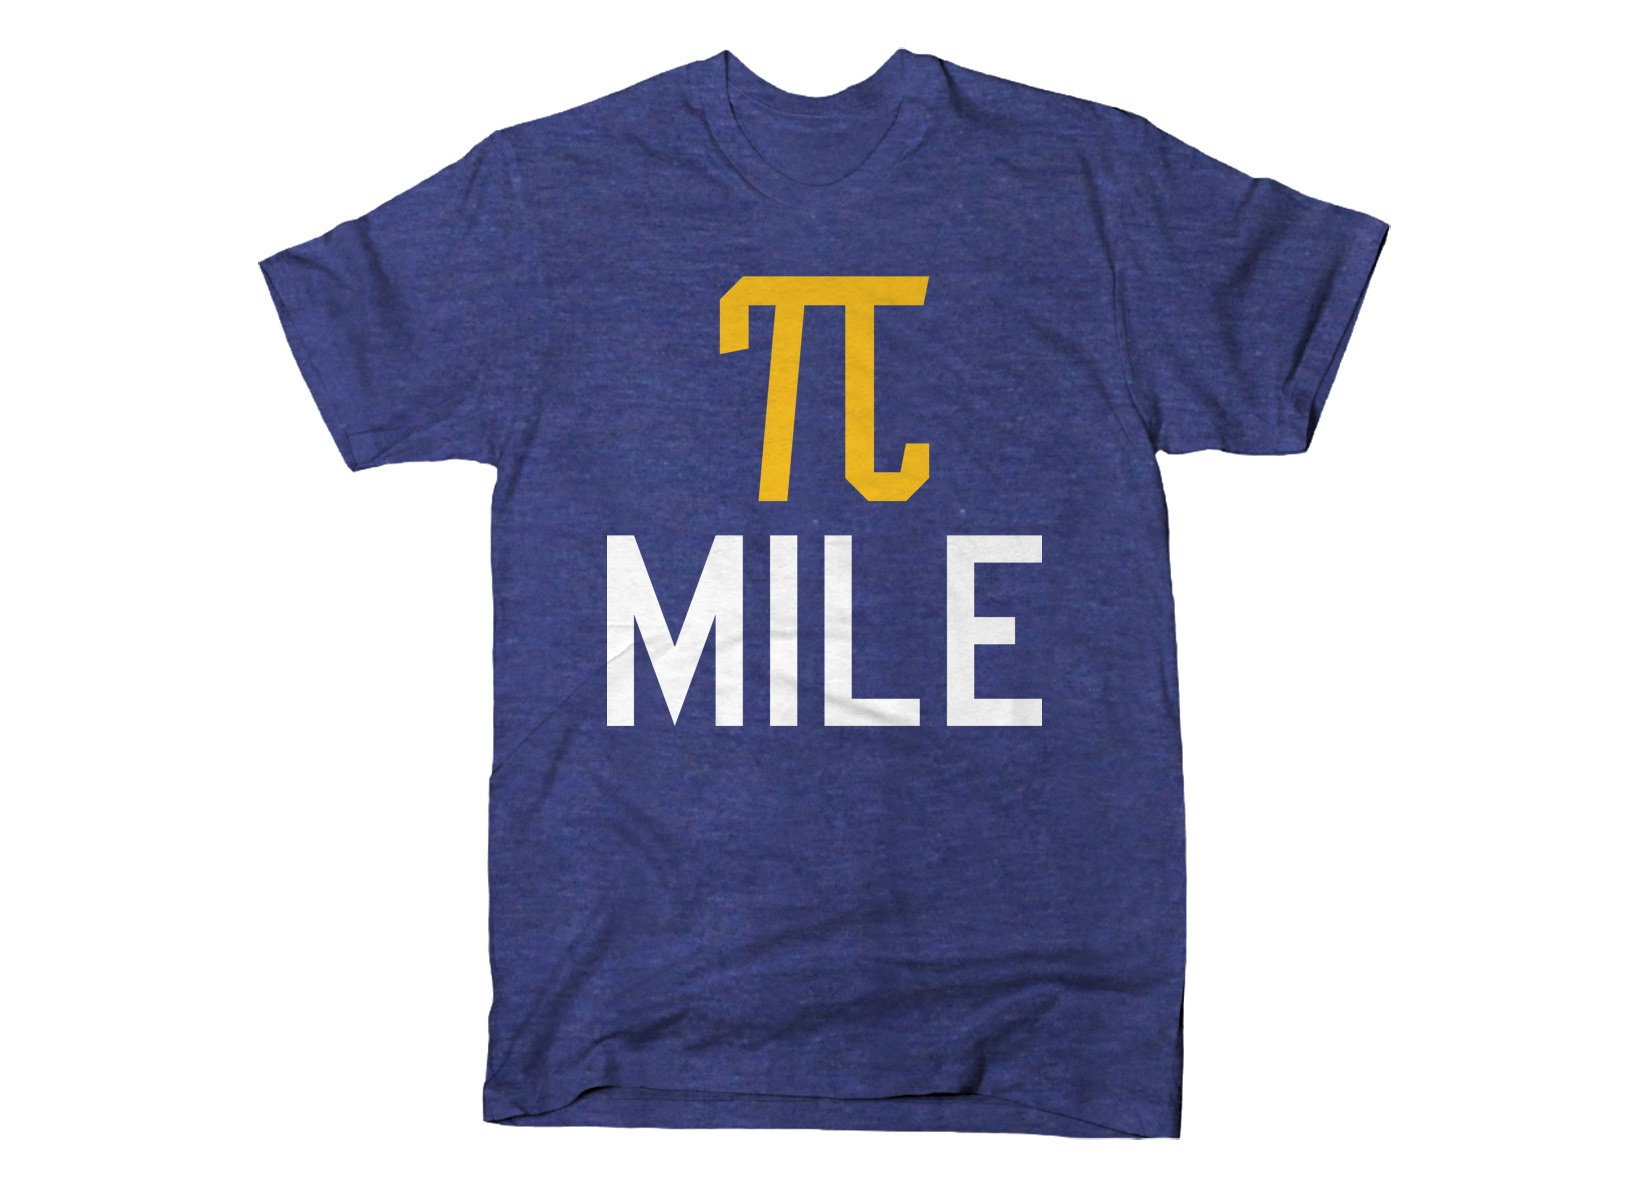 The Pi Mile on Mens T-Shirt